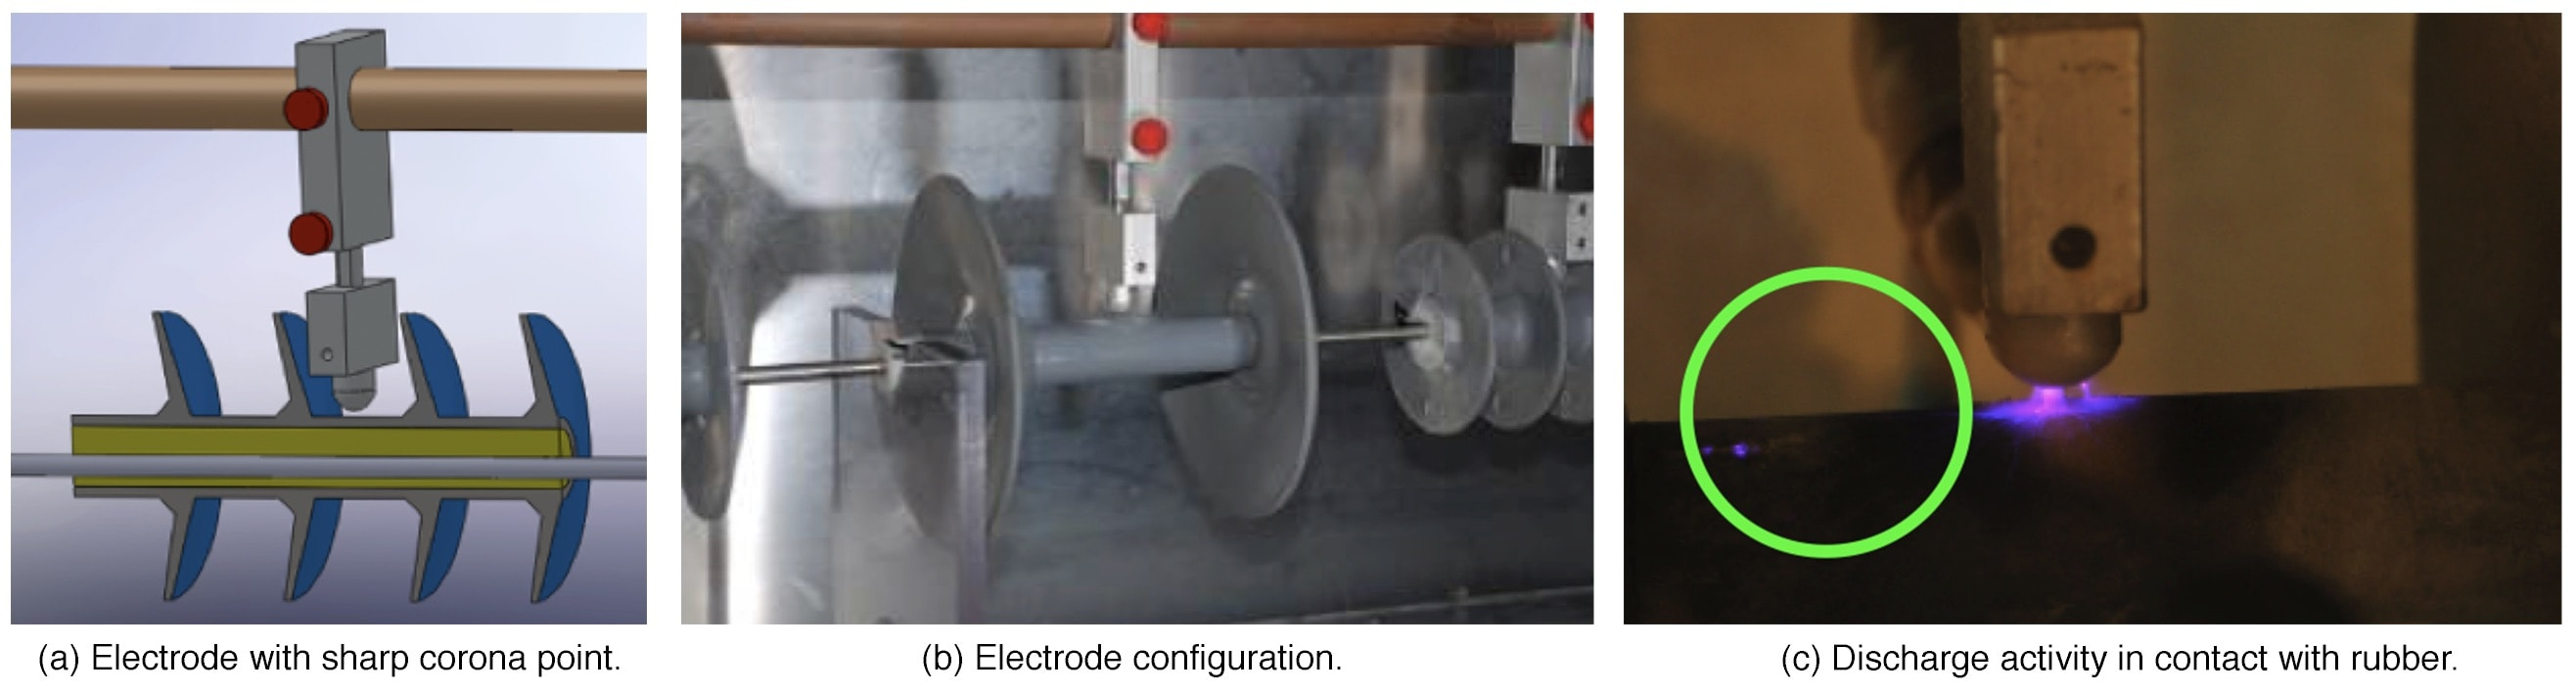 polymer insulator Small-Scale Test Chamber & Criteria for Evaluating Polymer Insulators Electrodeelectrode configuration corona discharge in contact with rubber material